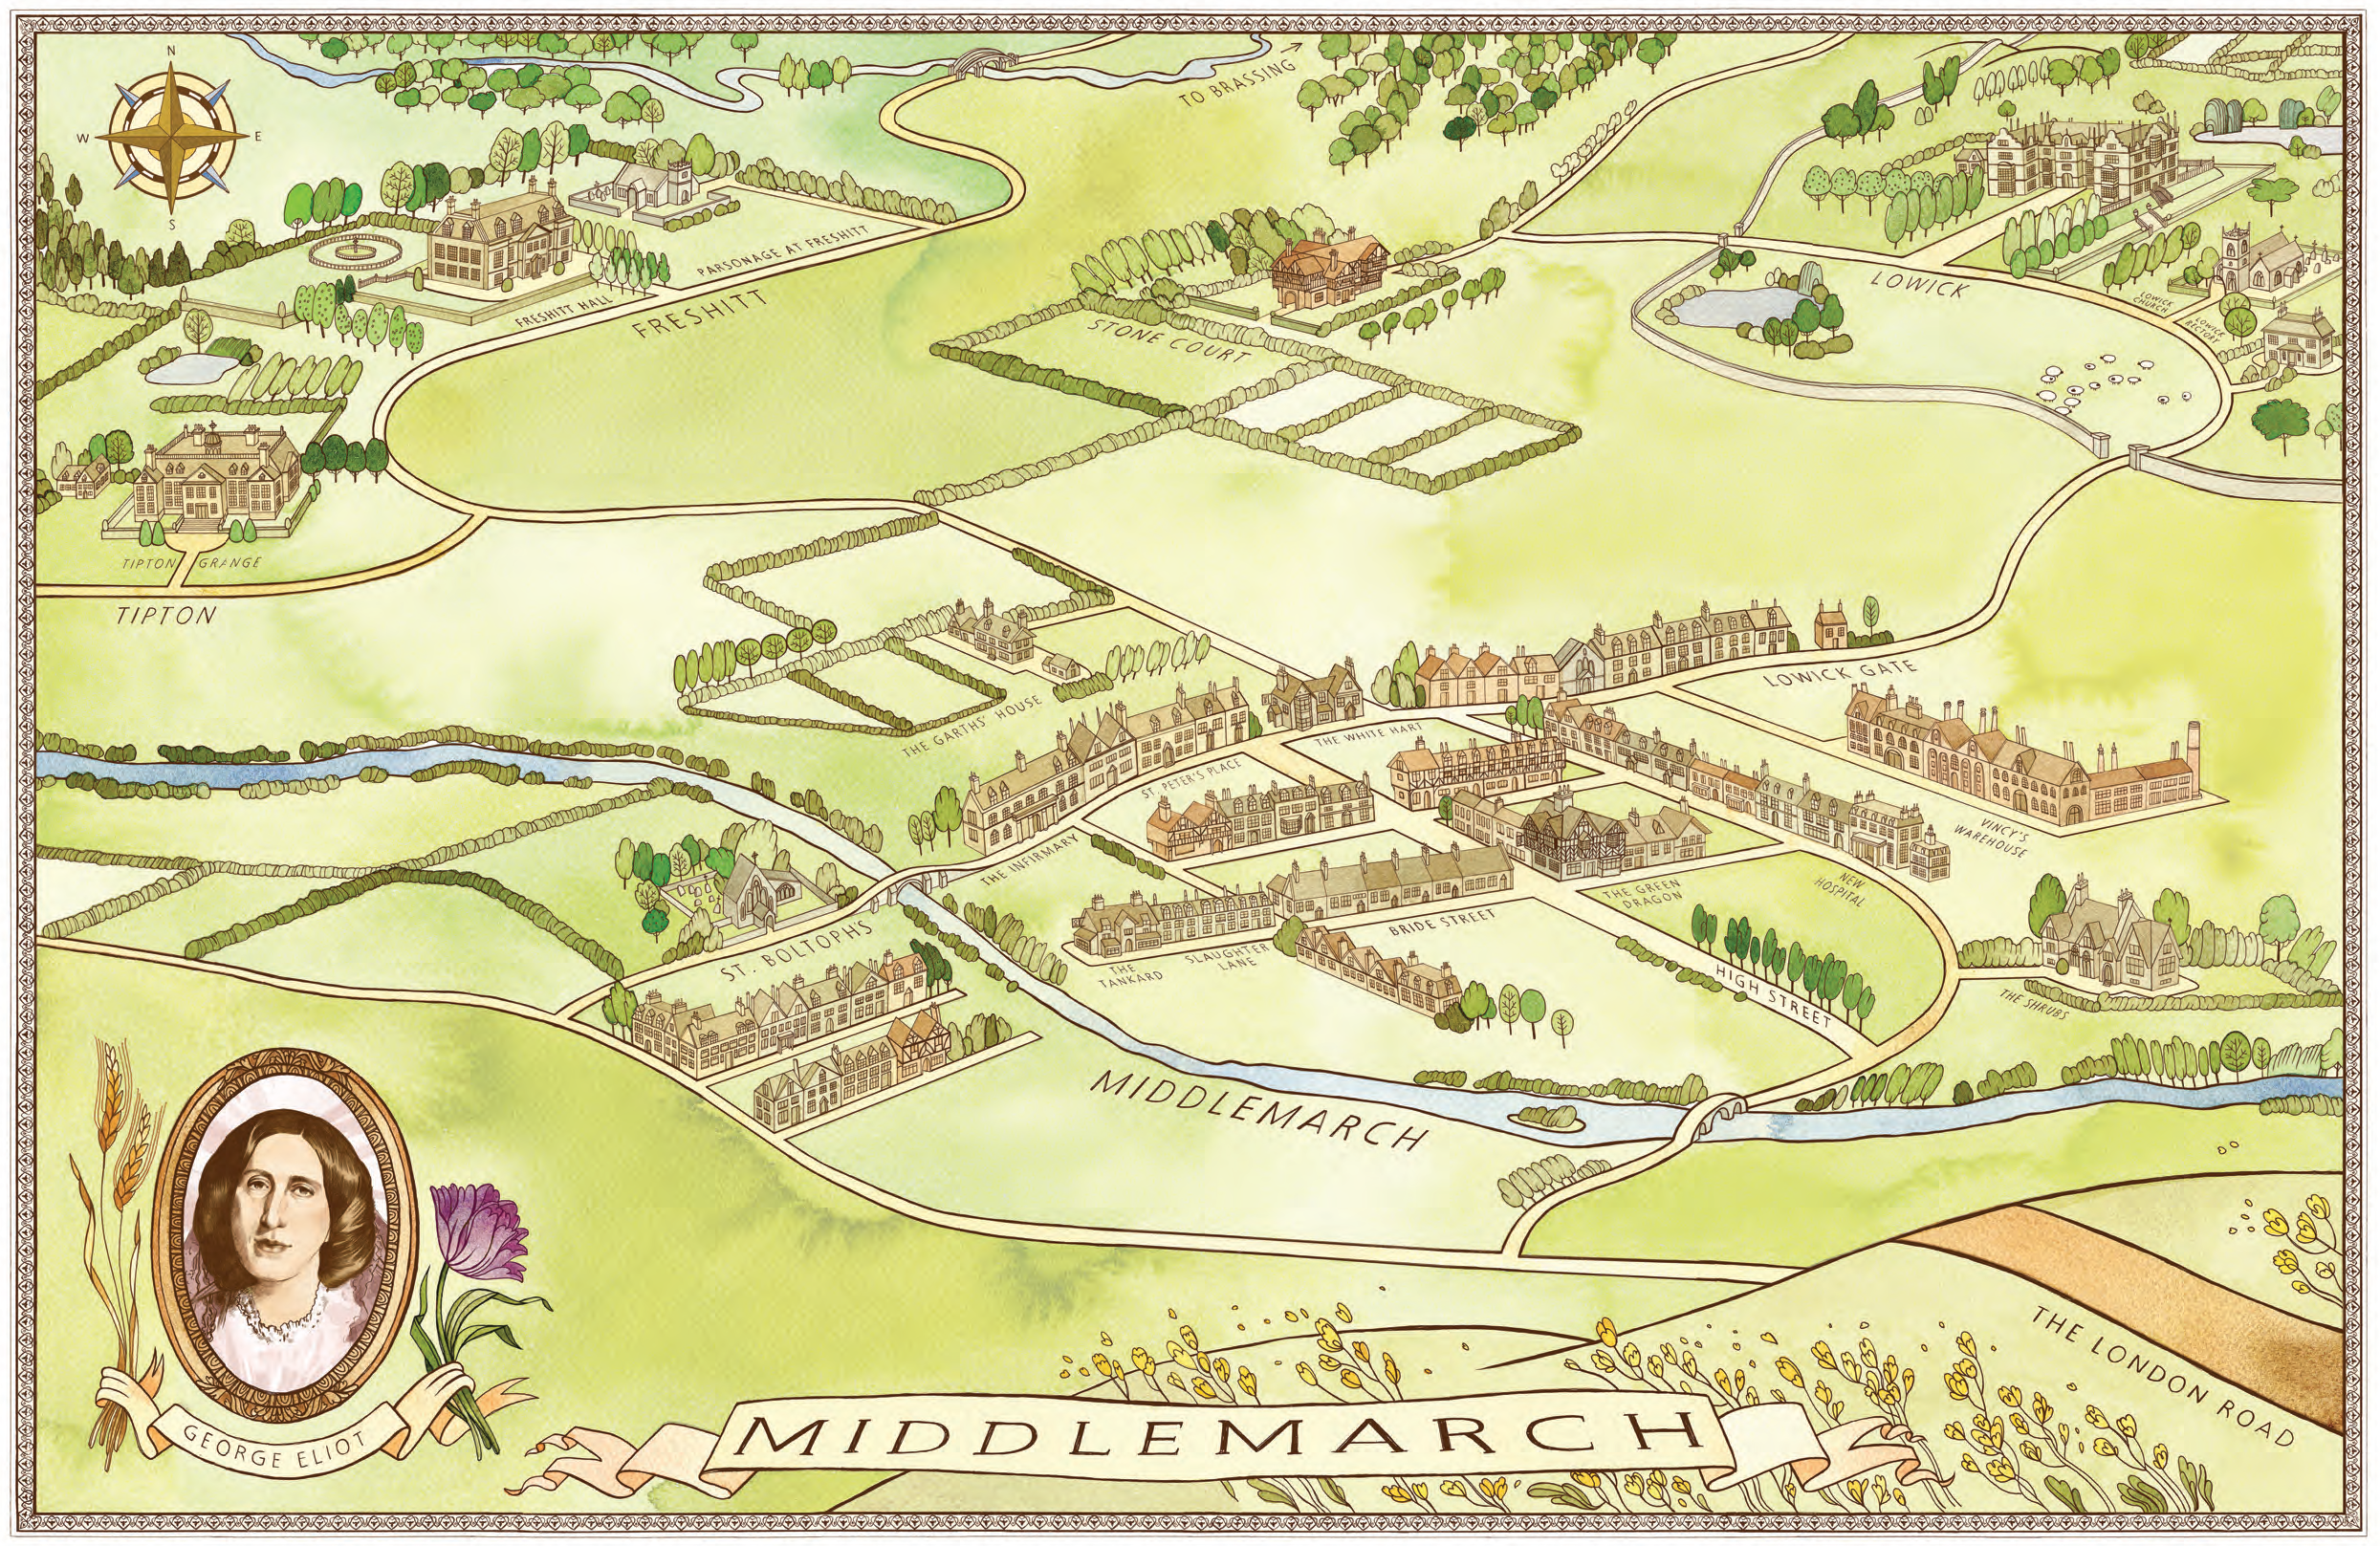 Middlemarch Map | Physical map, Me on a map, Penguin random house